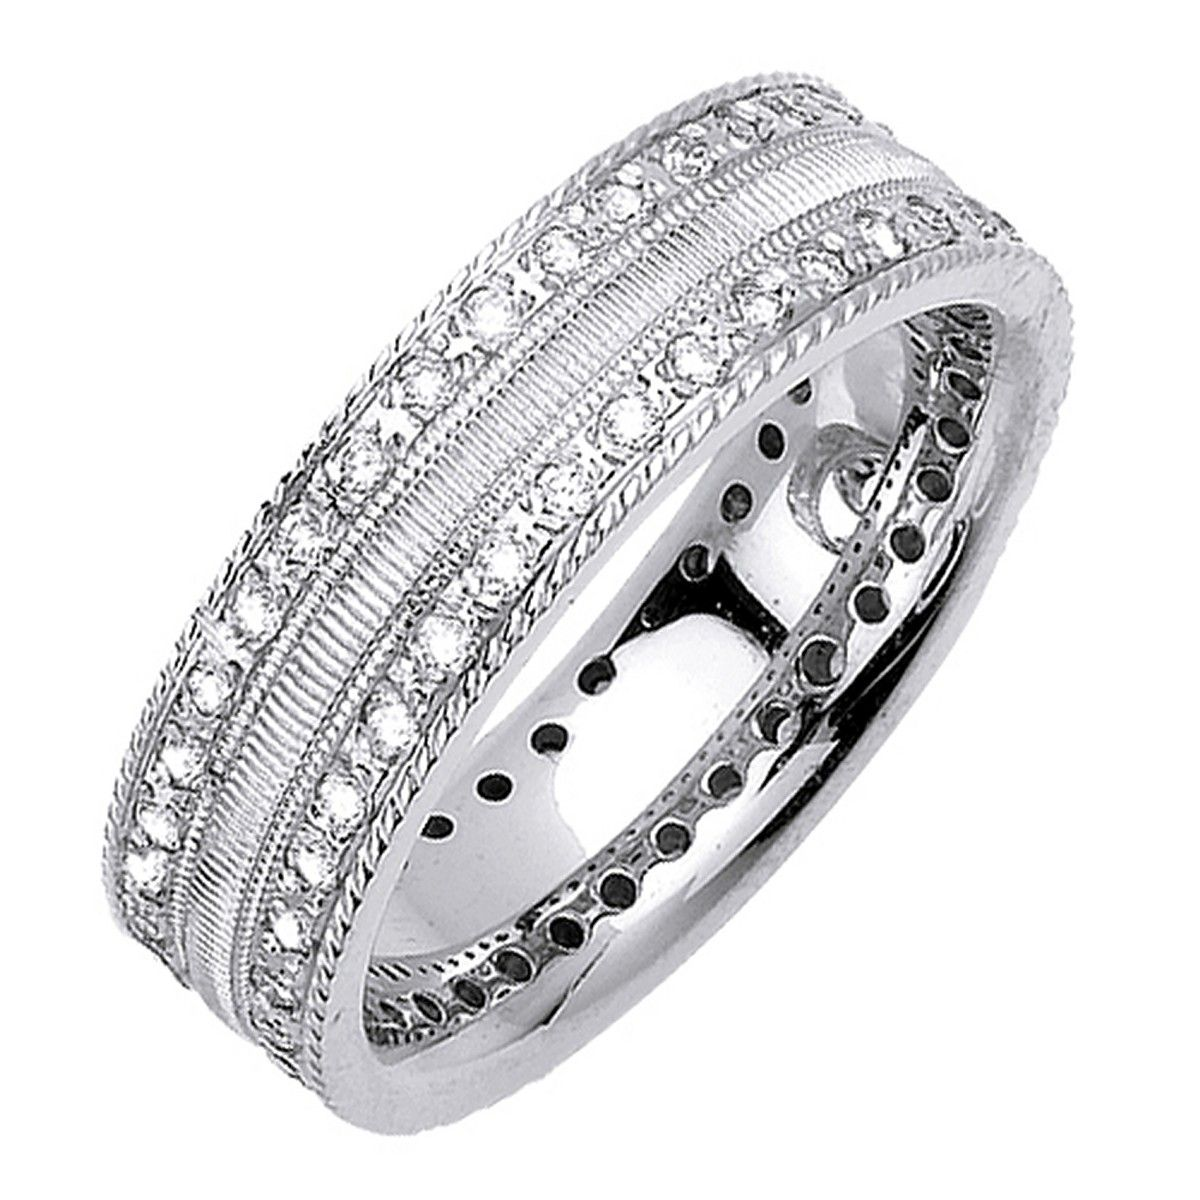 Diamond bangle diamond ring diamond bracelet diamond jewelry ...